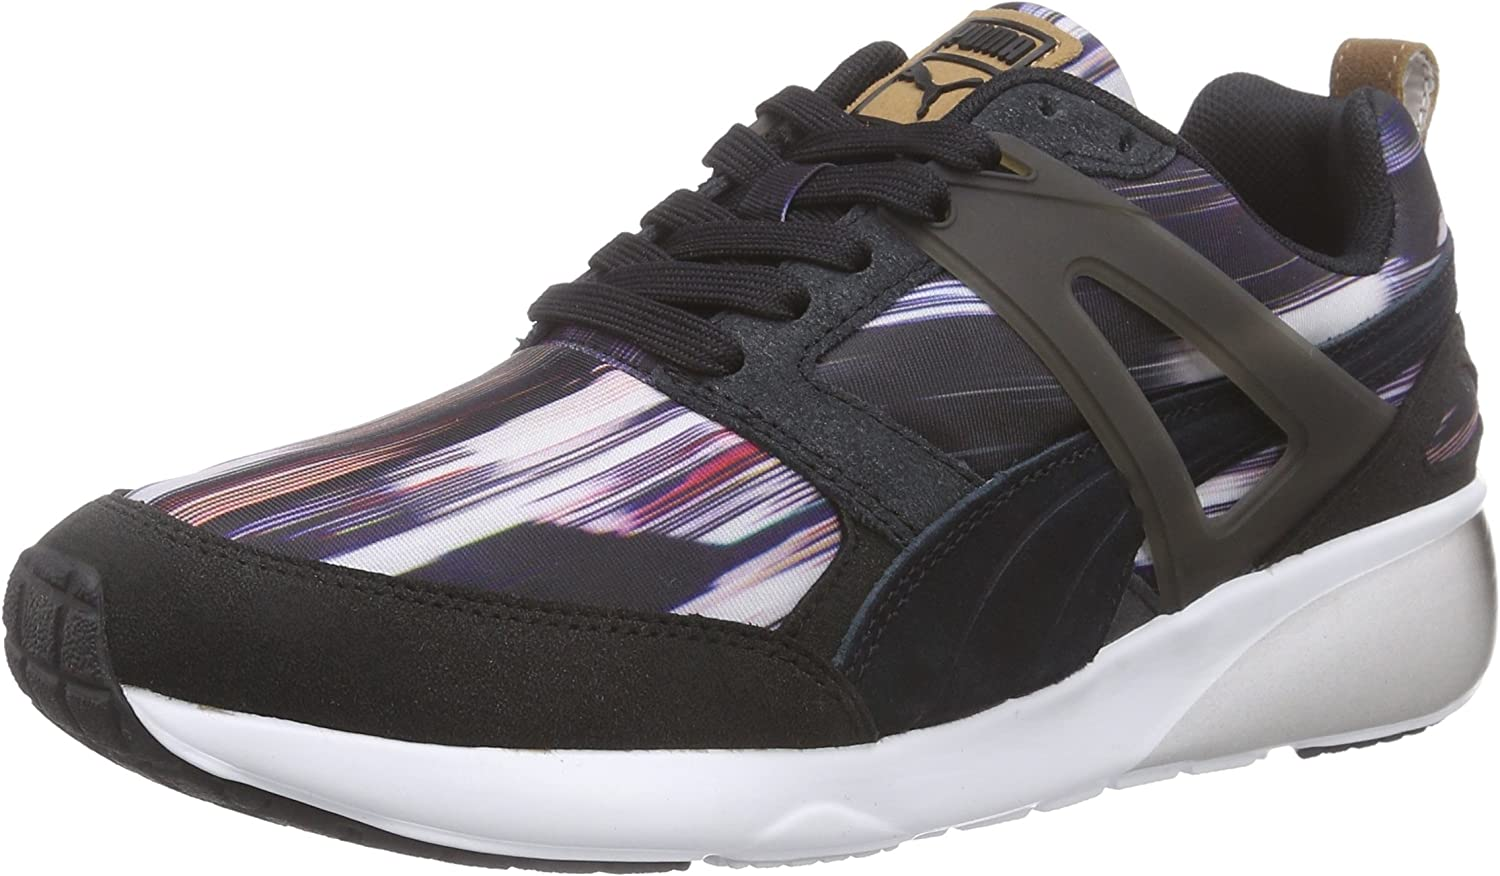 PUMA Aril Fast Graphic Womens Running Sneakers shoes